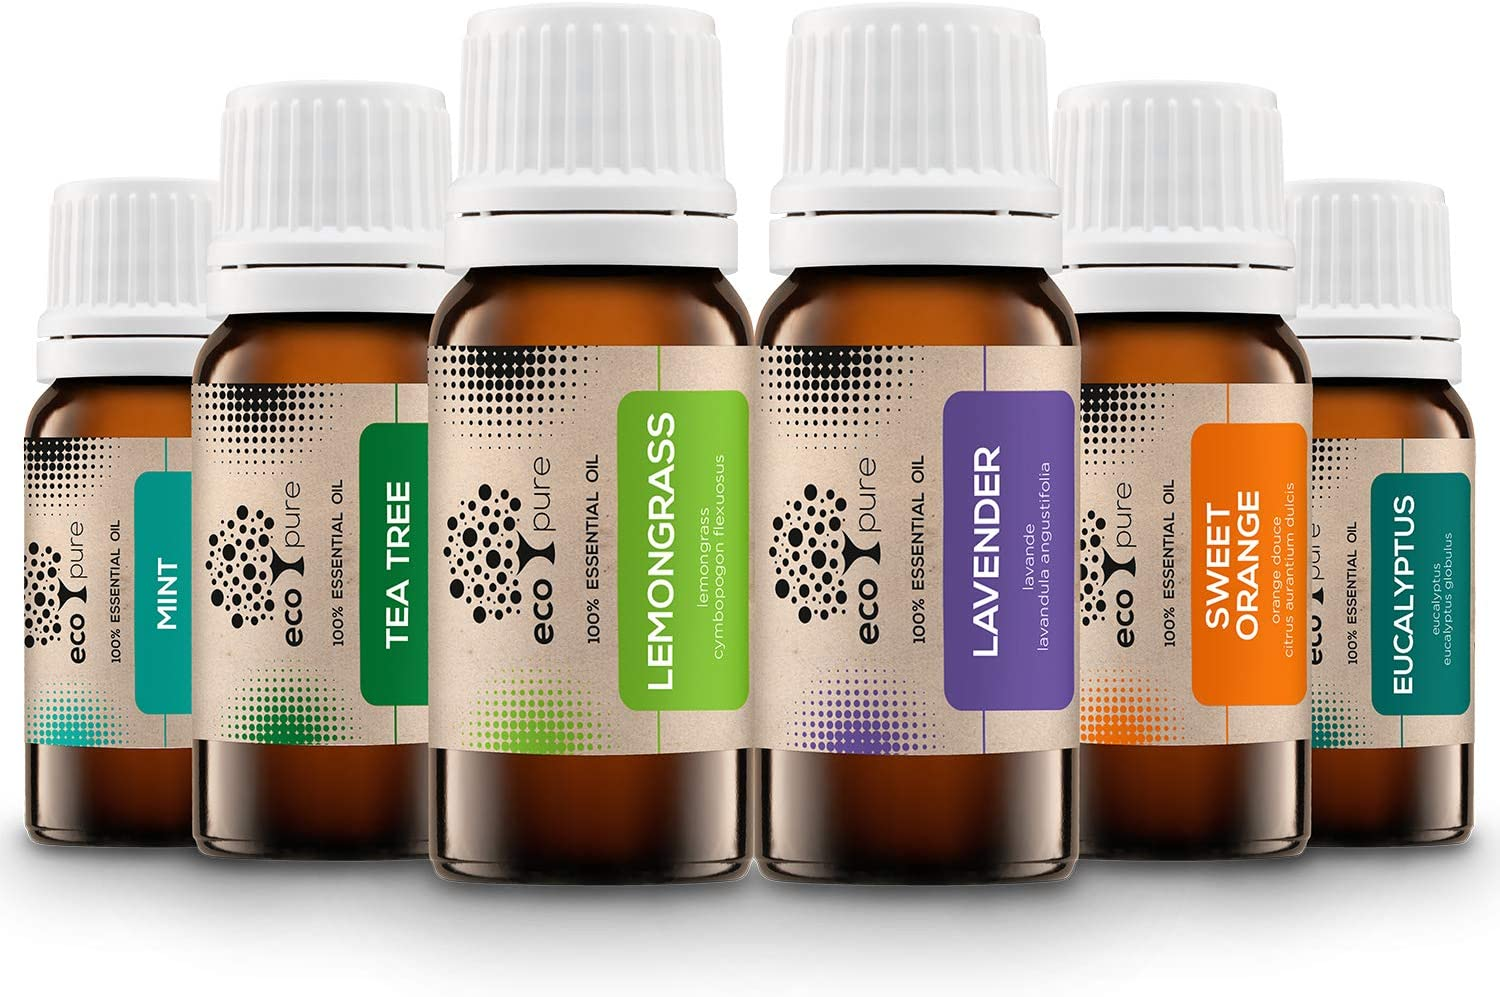 Untitled | Humidifier essential oils, Essential oils